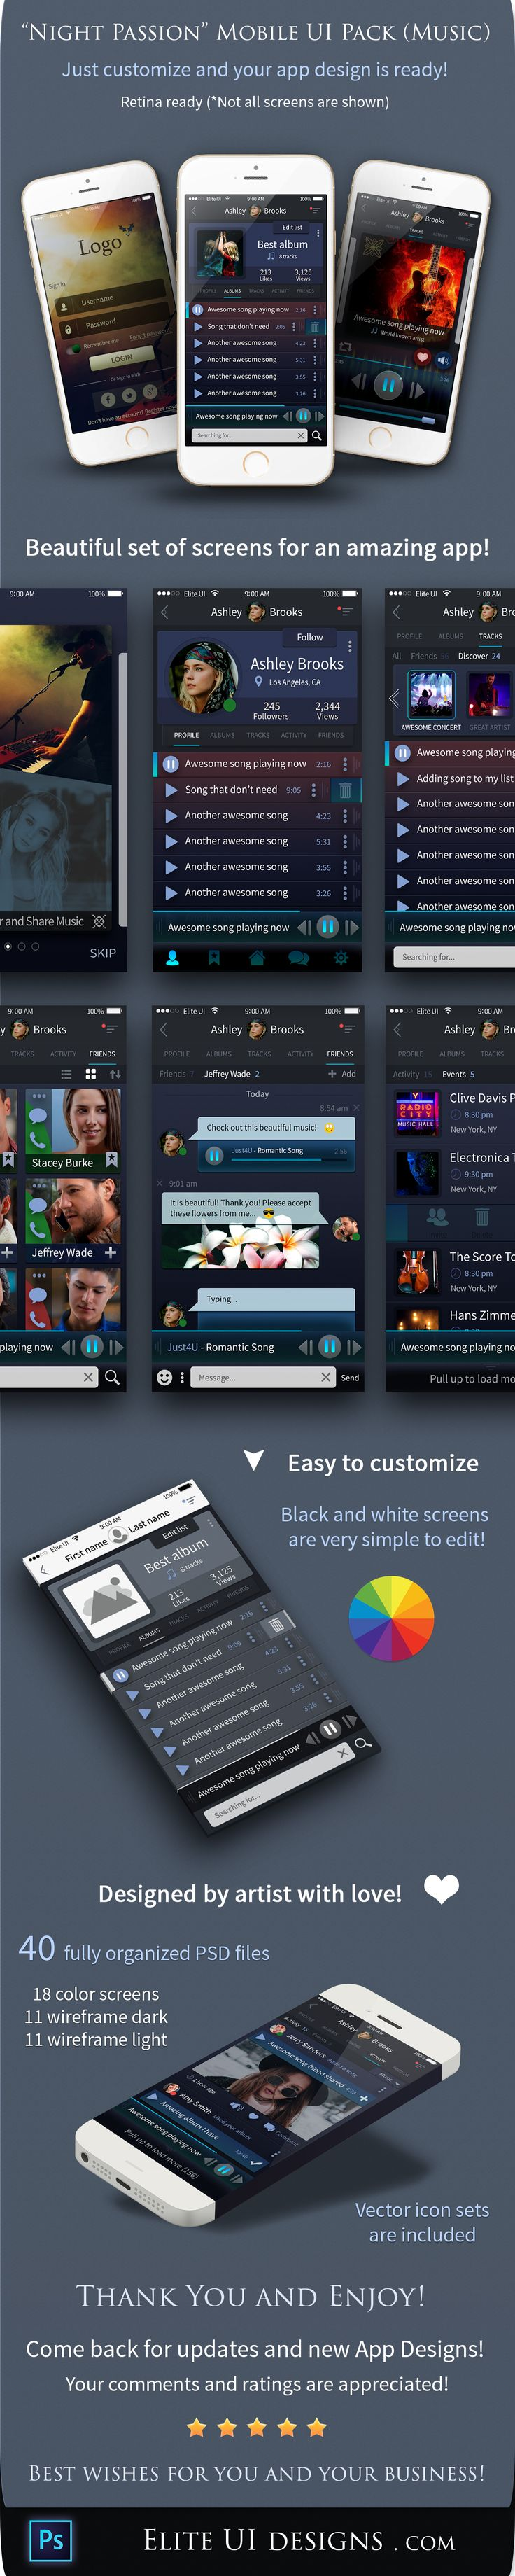 Awesome UI design kit for a music app!